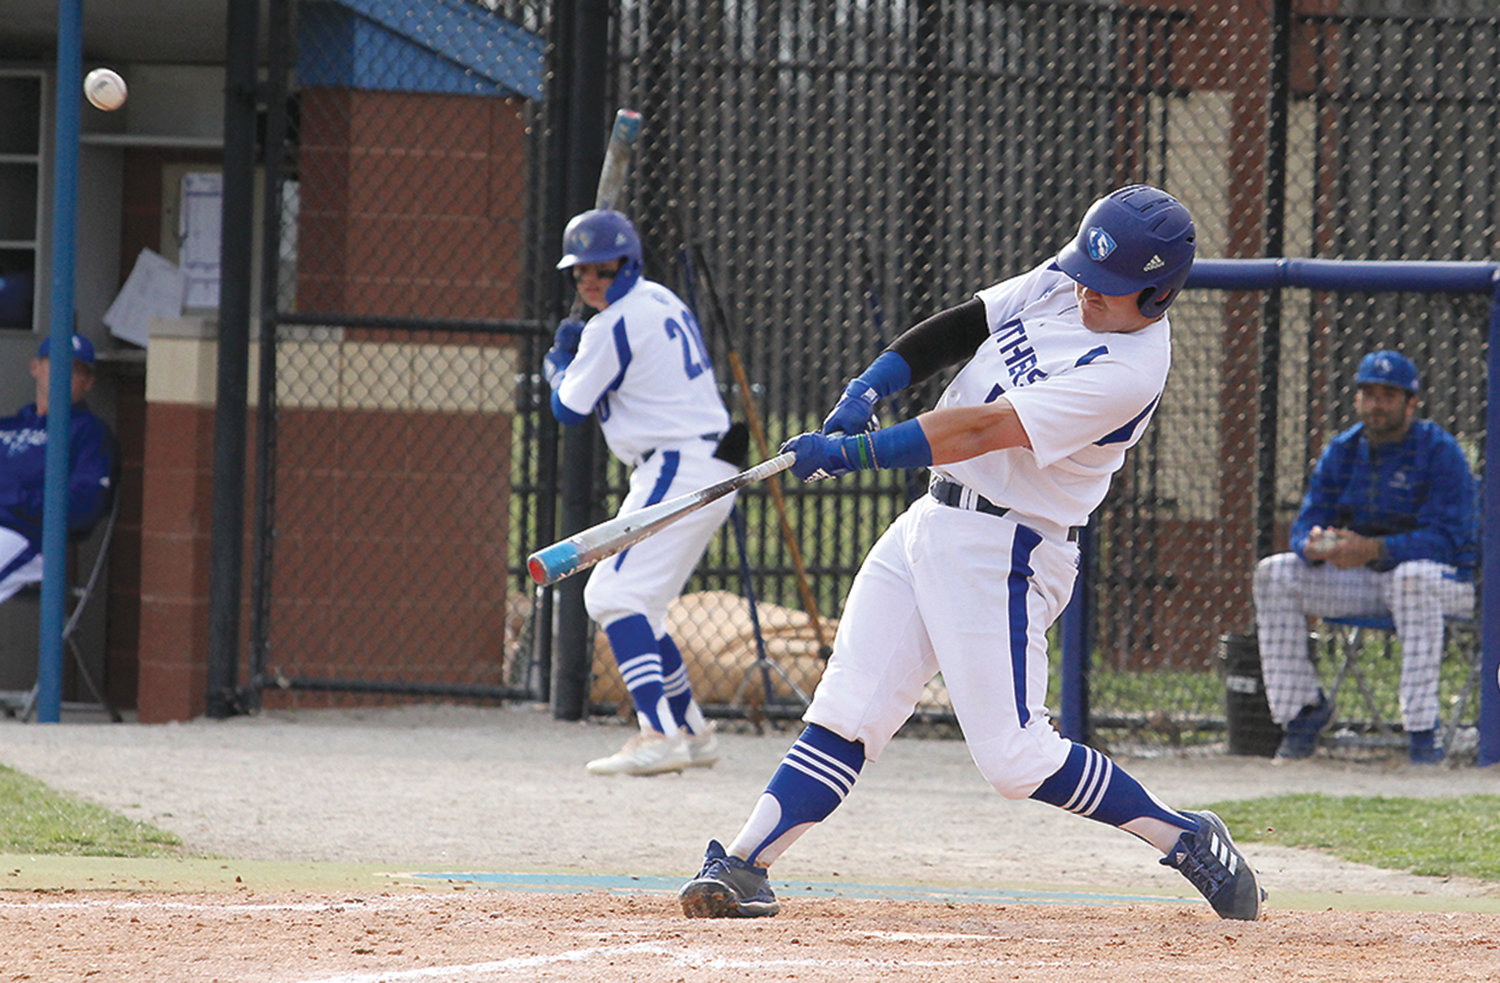 Hunter Morris picks up a hit during this past spring's Eastern Illinois University Panthers baseball season. Morris, a red-shirt senior, completed his collegiater baseball career with the Panthers after a stellar baseball career at Paris High School.